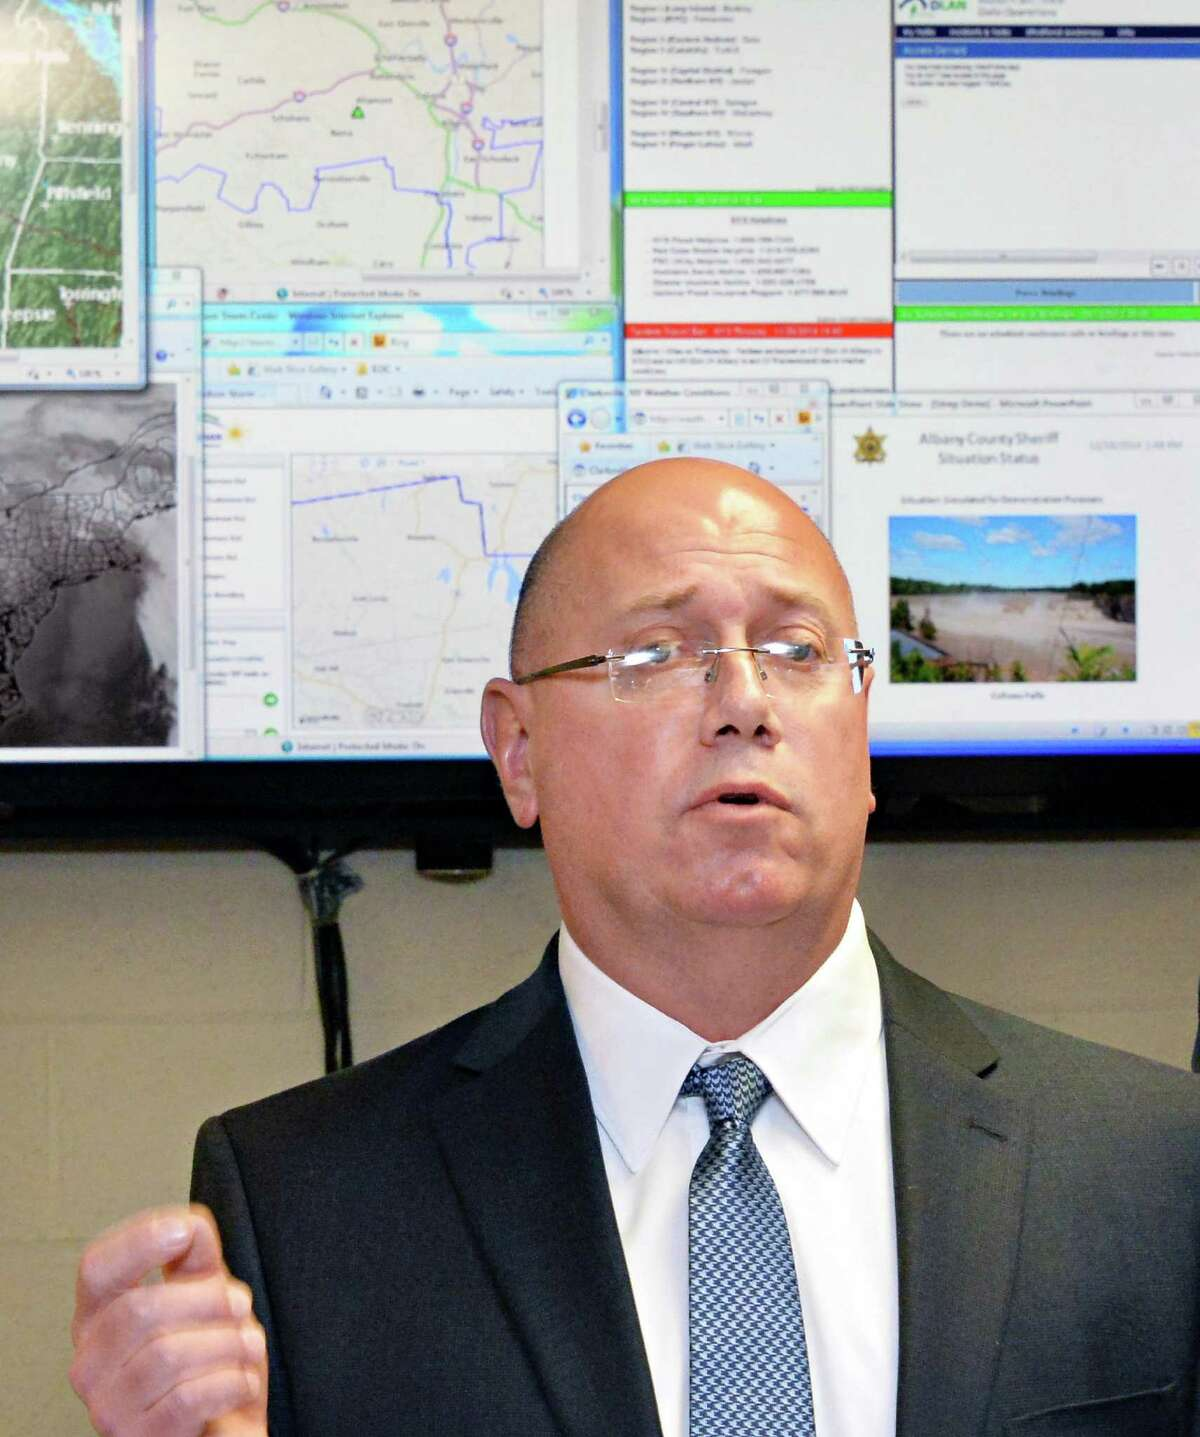 Dennis Stewart of Earth Networks Ð WeatherBug Energy Solutions speaks during a news conference at the Albany County Sheriff Public Safety Building Wednesday Dec. 17, 2014, in Clarksville, NY. (John Carl D'Annibale / Times Union)